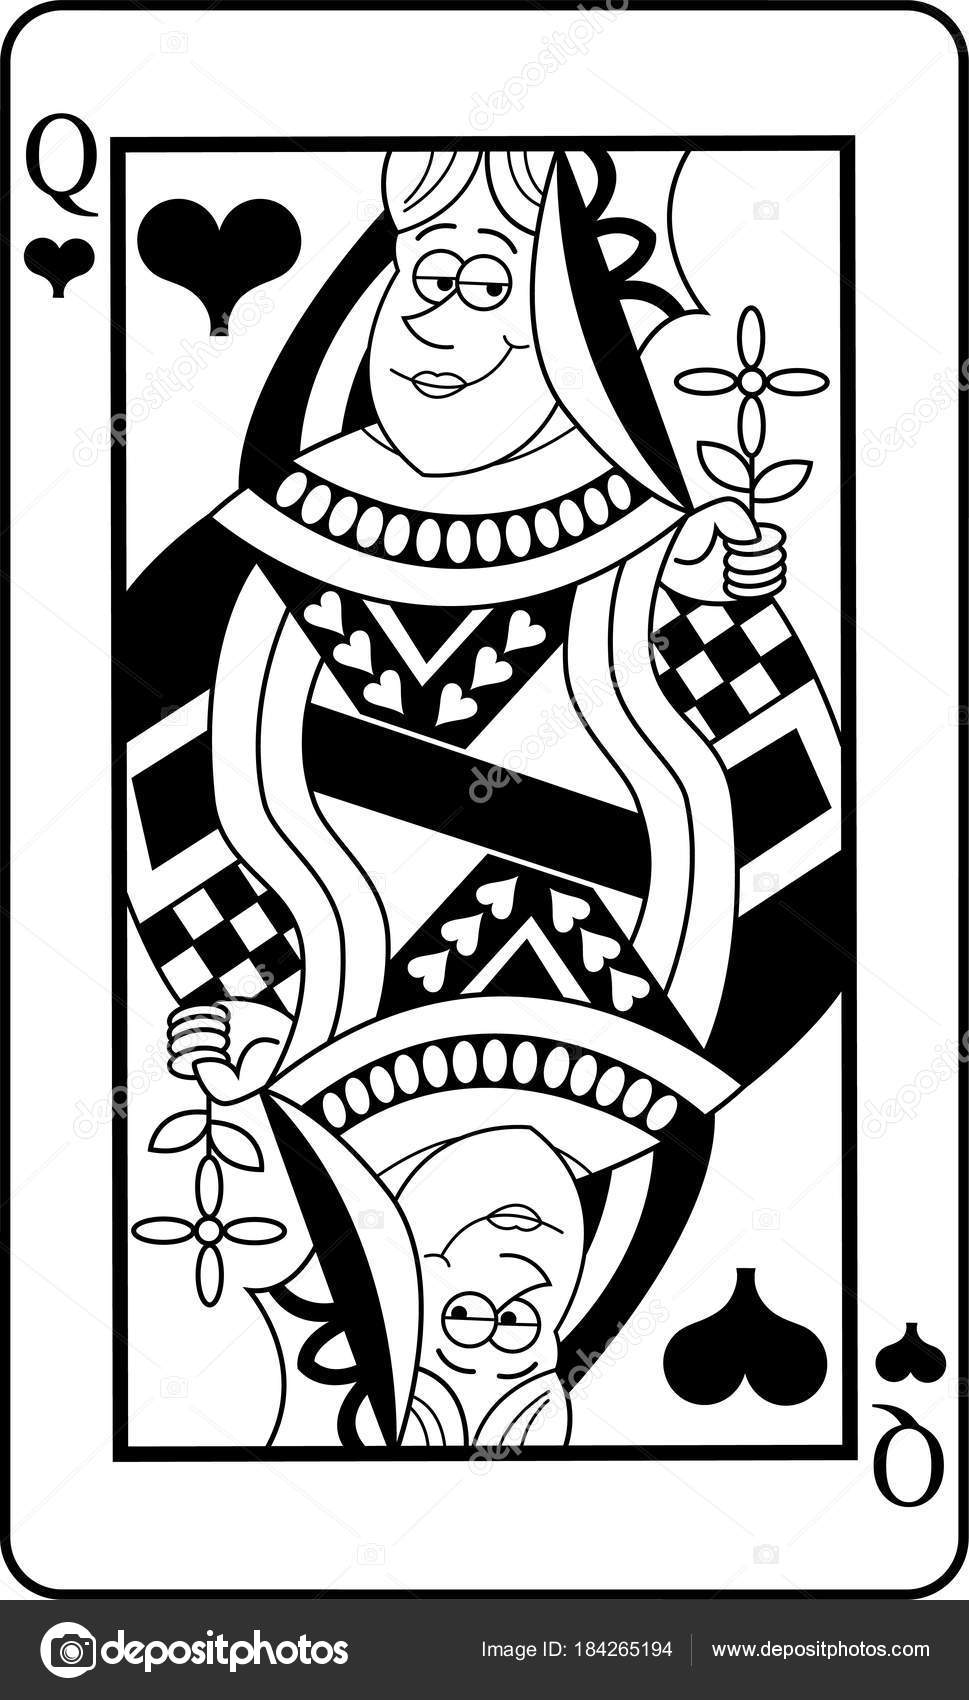 Black White Illustration Queen Hearts Playing Card — Stock Vector ...